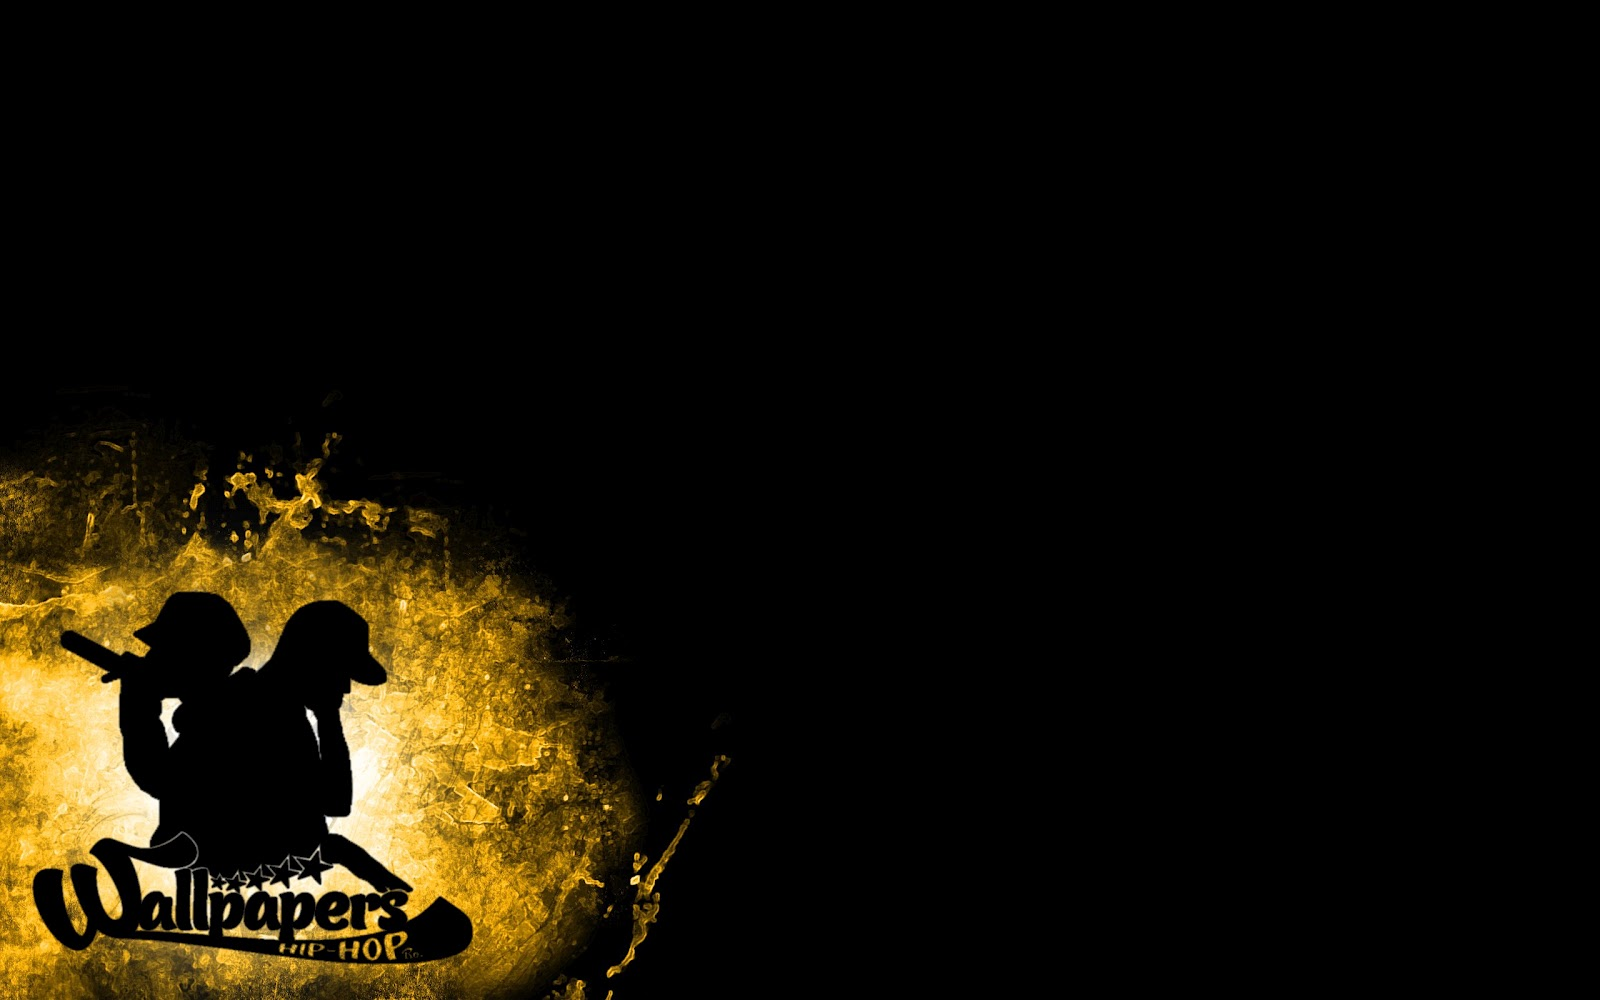 Wallpapers Hip Hop Ro ablonul Awesome Inc Un produs Blogger 1600x1000